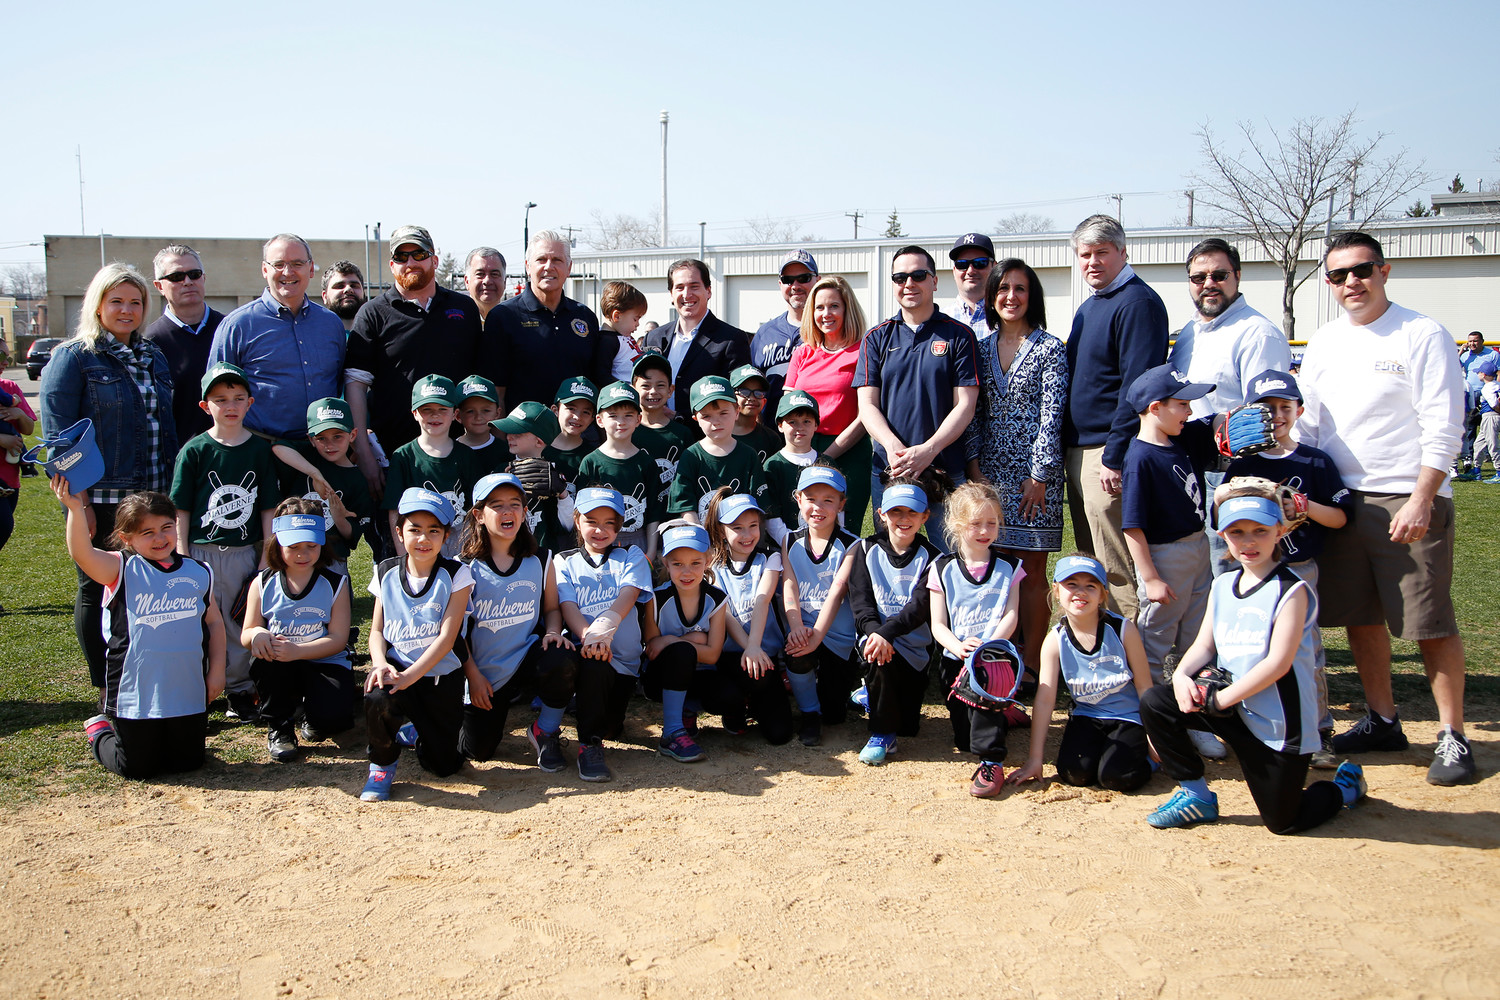 County and state officials accompanied children at Malverne Little League's Opening Day ceremony on April 14.